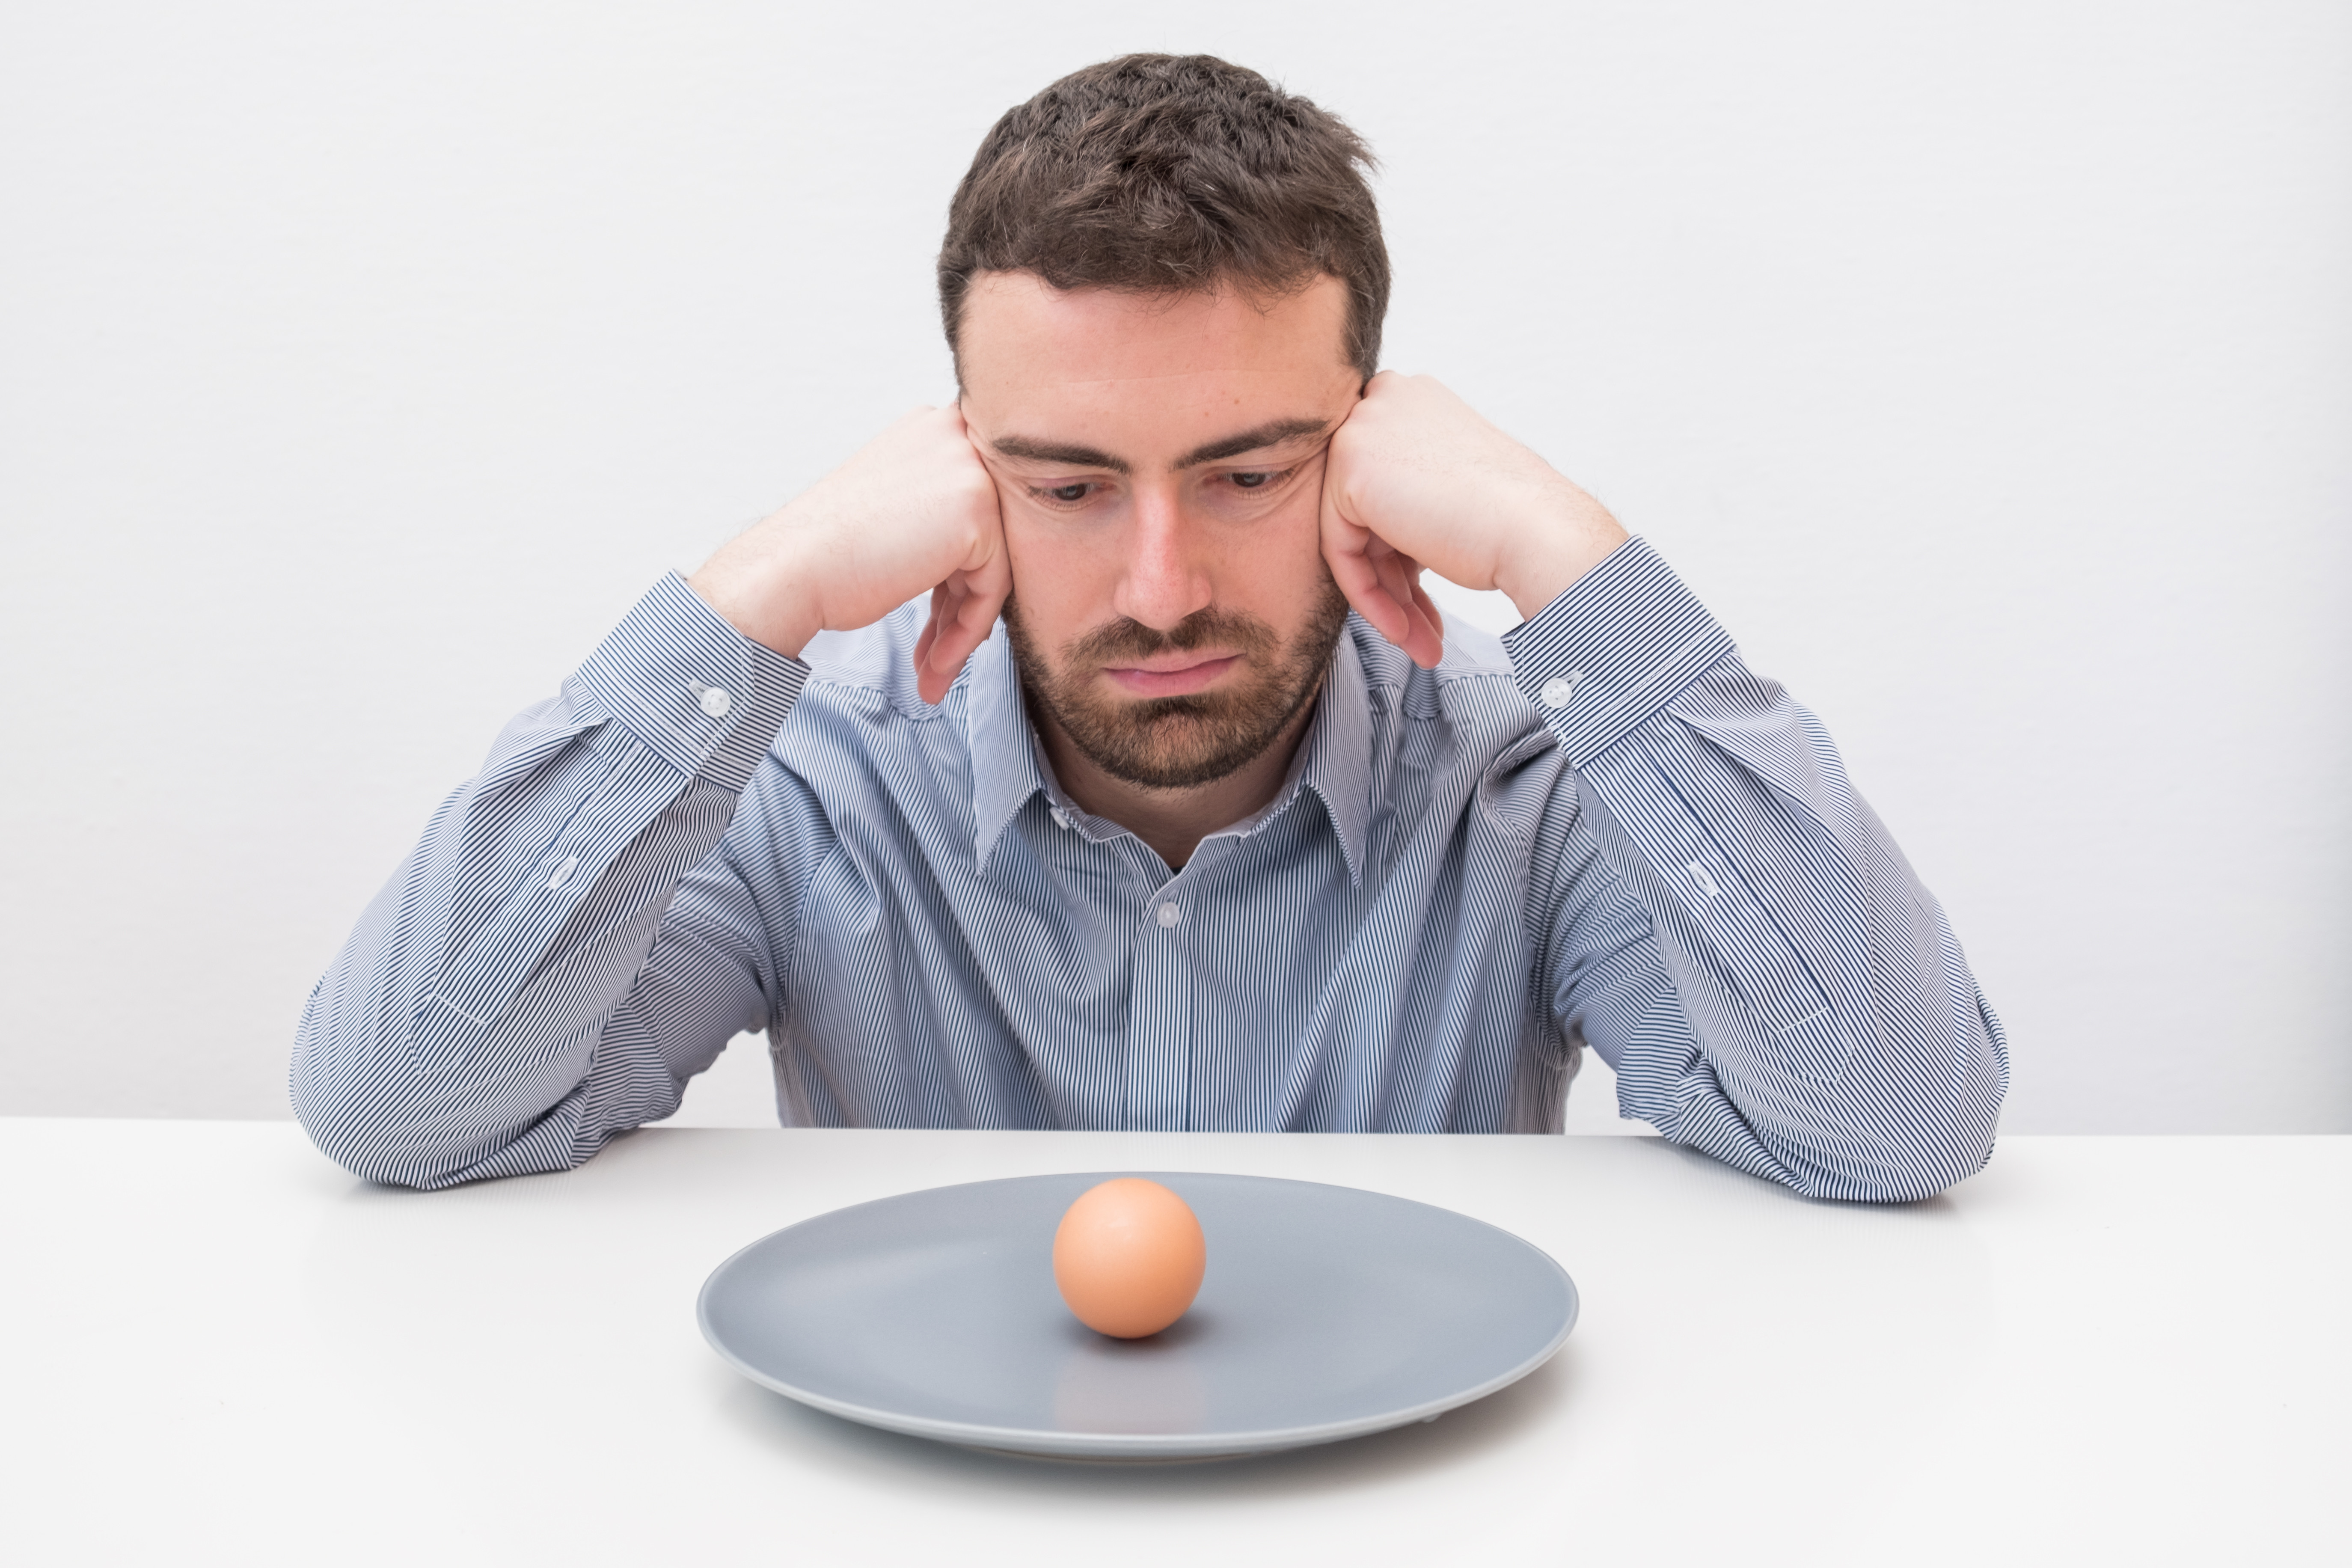 man-looking-at-egg-on-plate